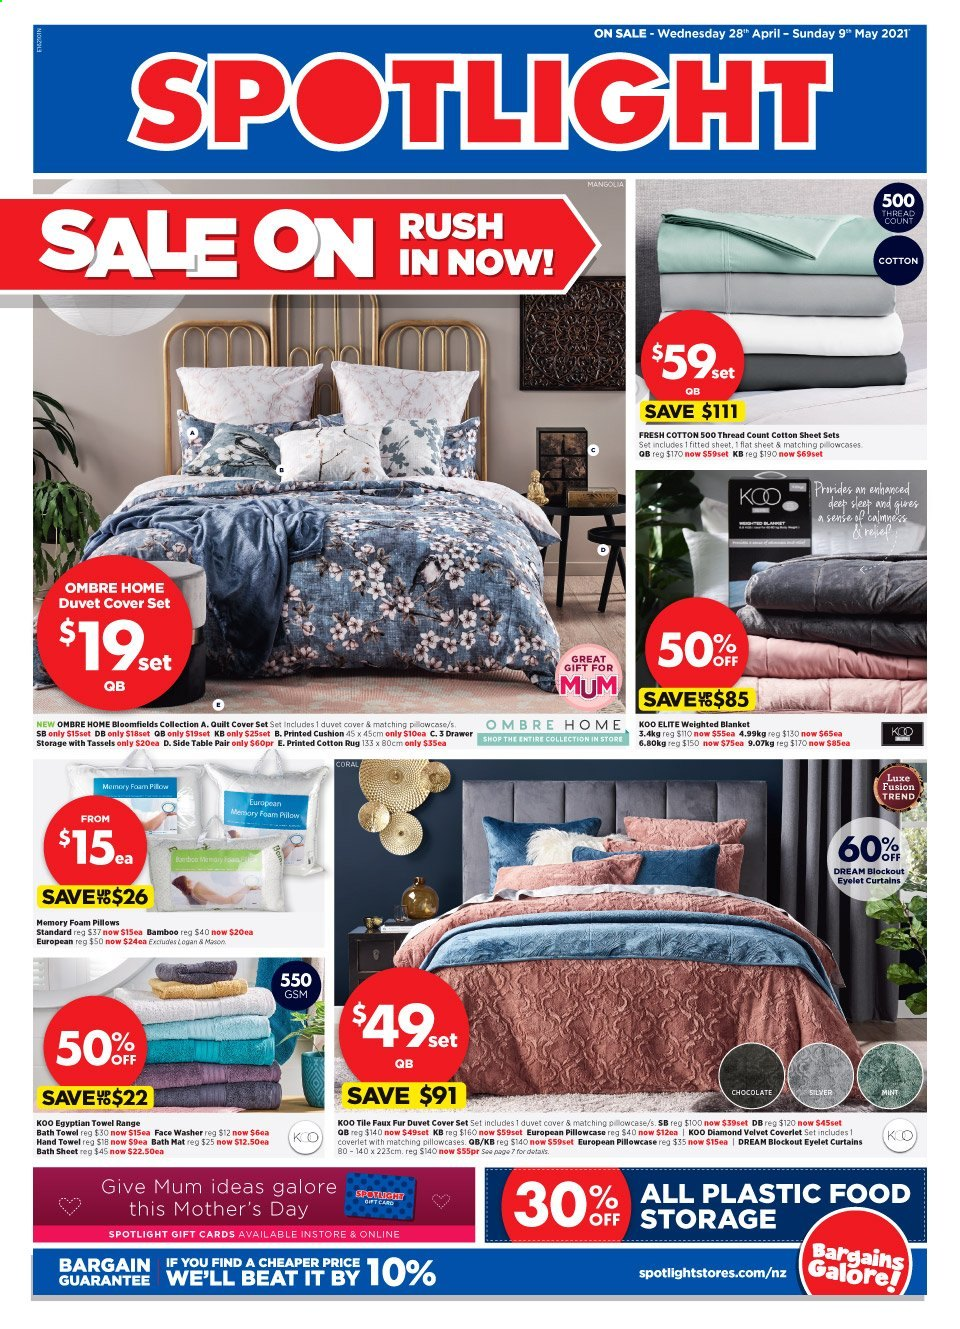 Spotlight mailer - 28.04.2021 - 09.05.2021 - Sales products - blanket, cushion, duvet, sheet, pillow, pillowcases, quilt, foam pillow, curtains, quilt cover set, bath mat, bath sheet, bath towel, towel, hand towel. Page 1.